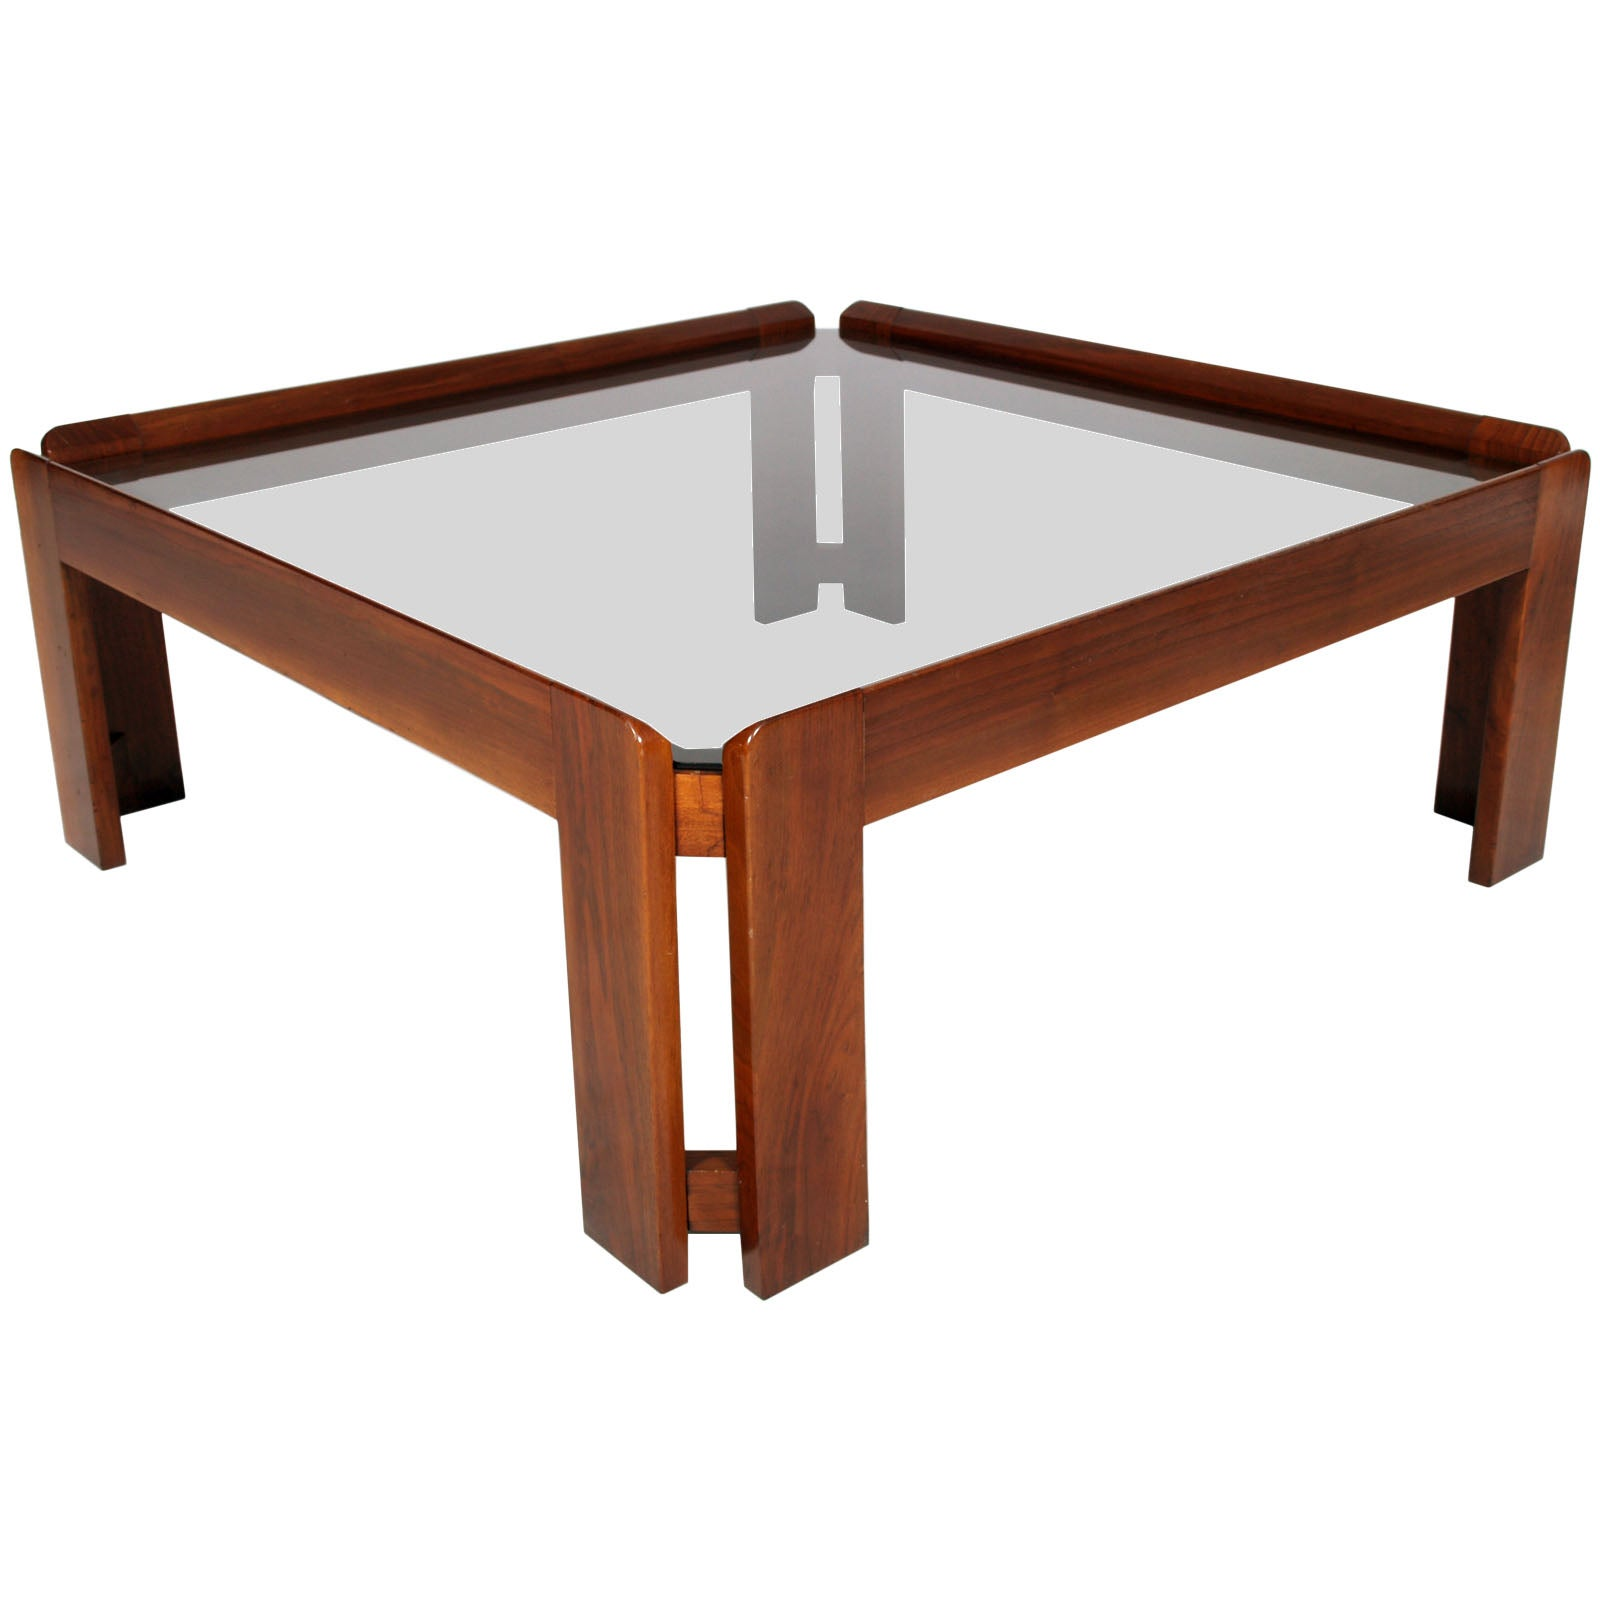 Midcentury Walnut Coffee Table, Top Cristal Fumè, A & Tobia Scarpa Attributed